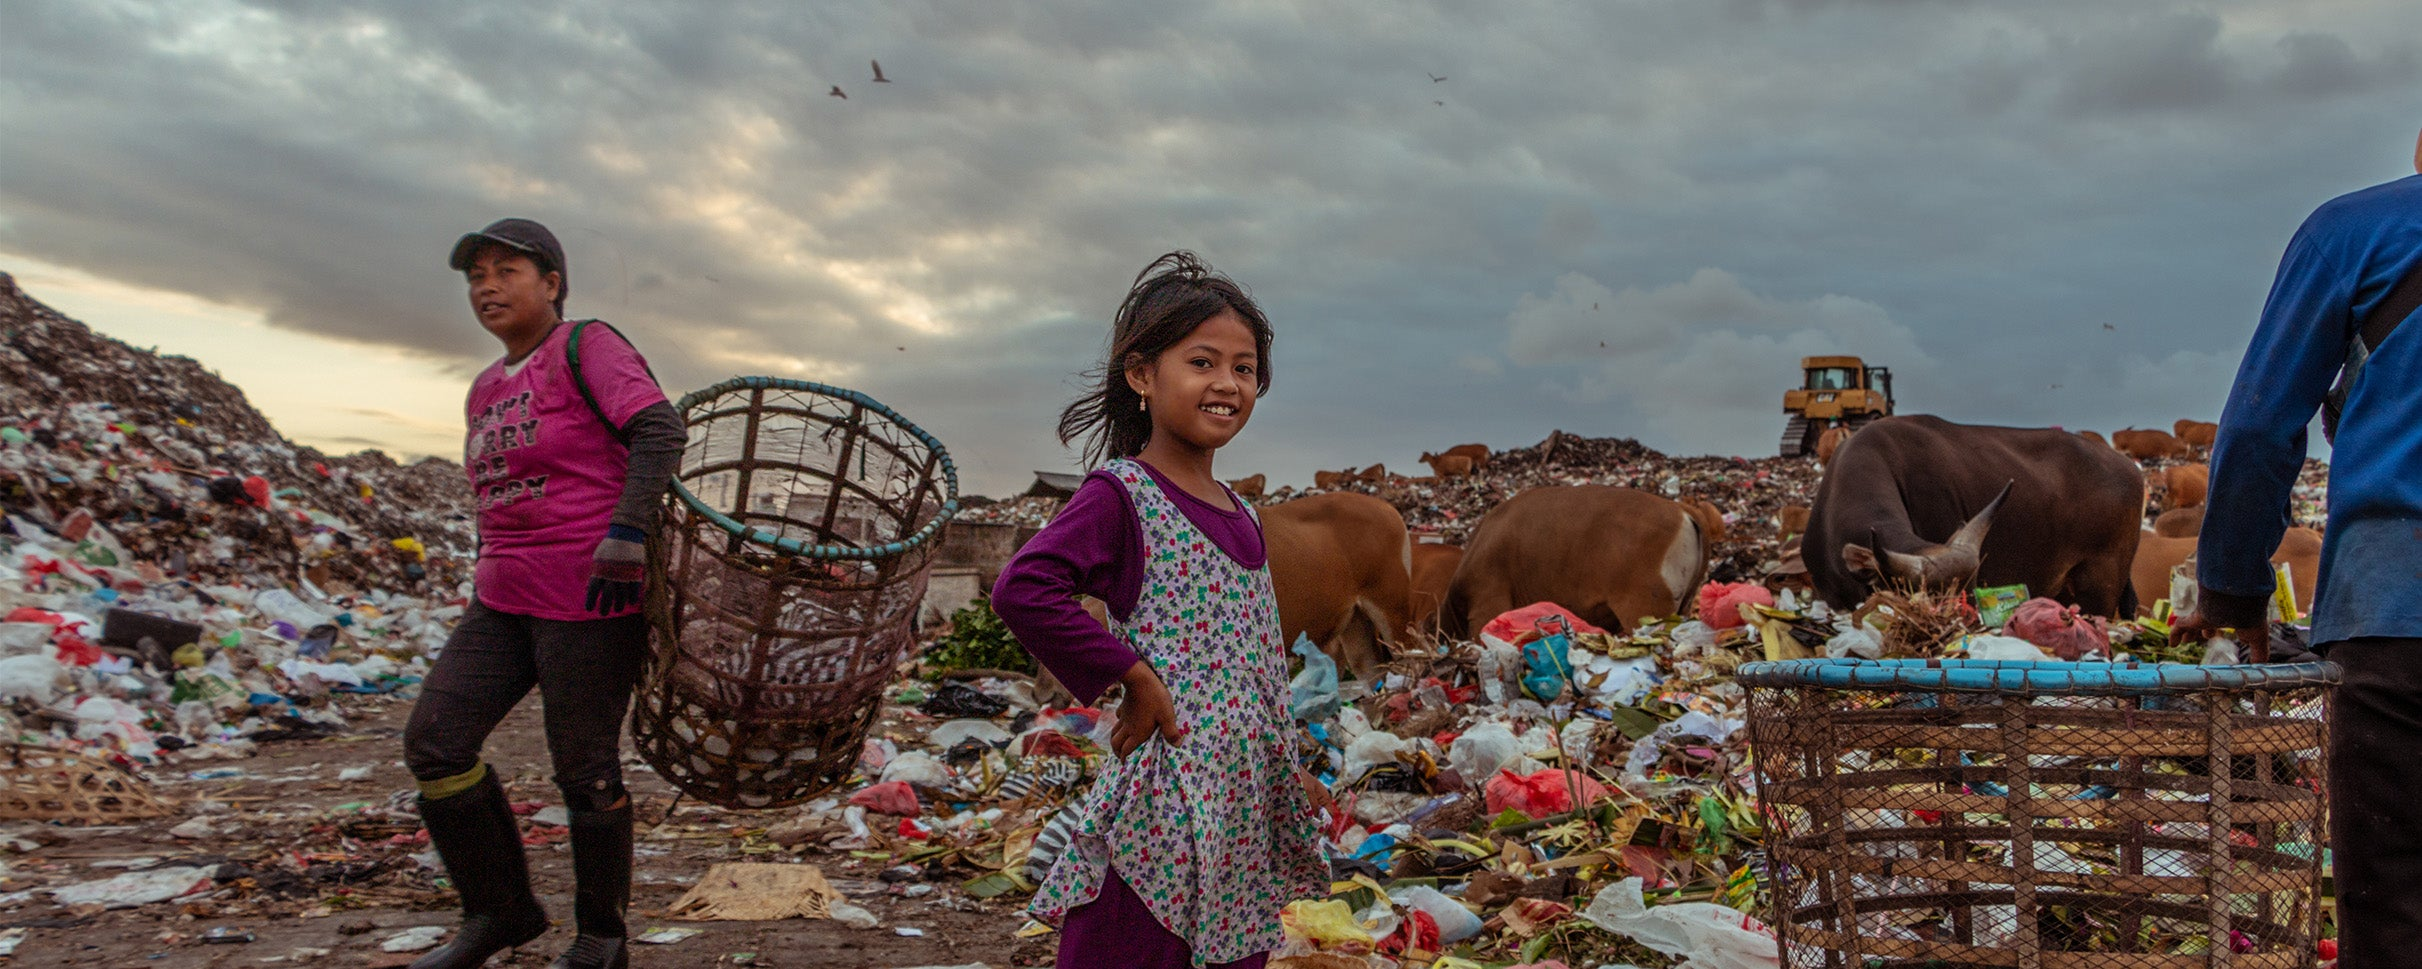 A young girl smiles for the camera despite growing up on a landfill.